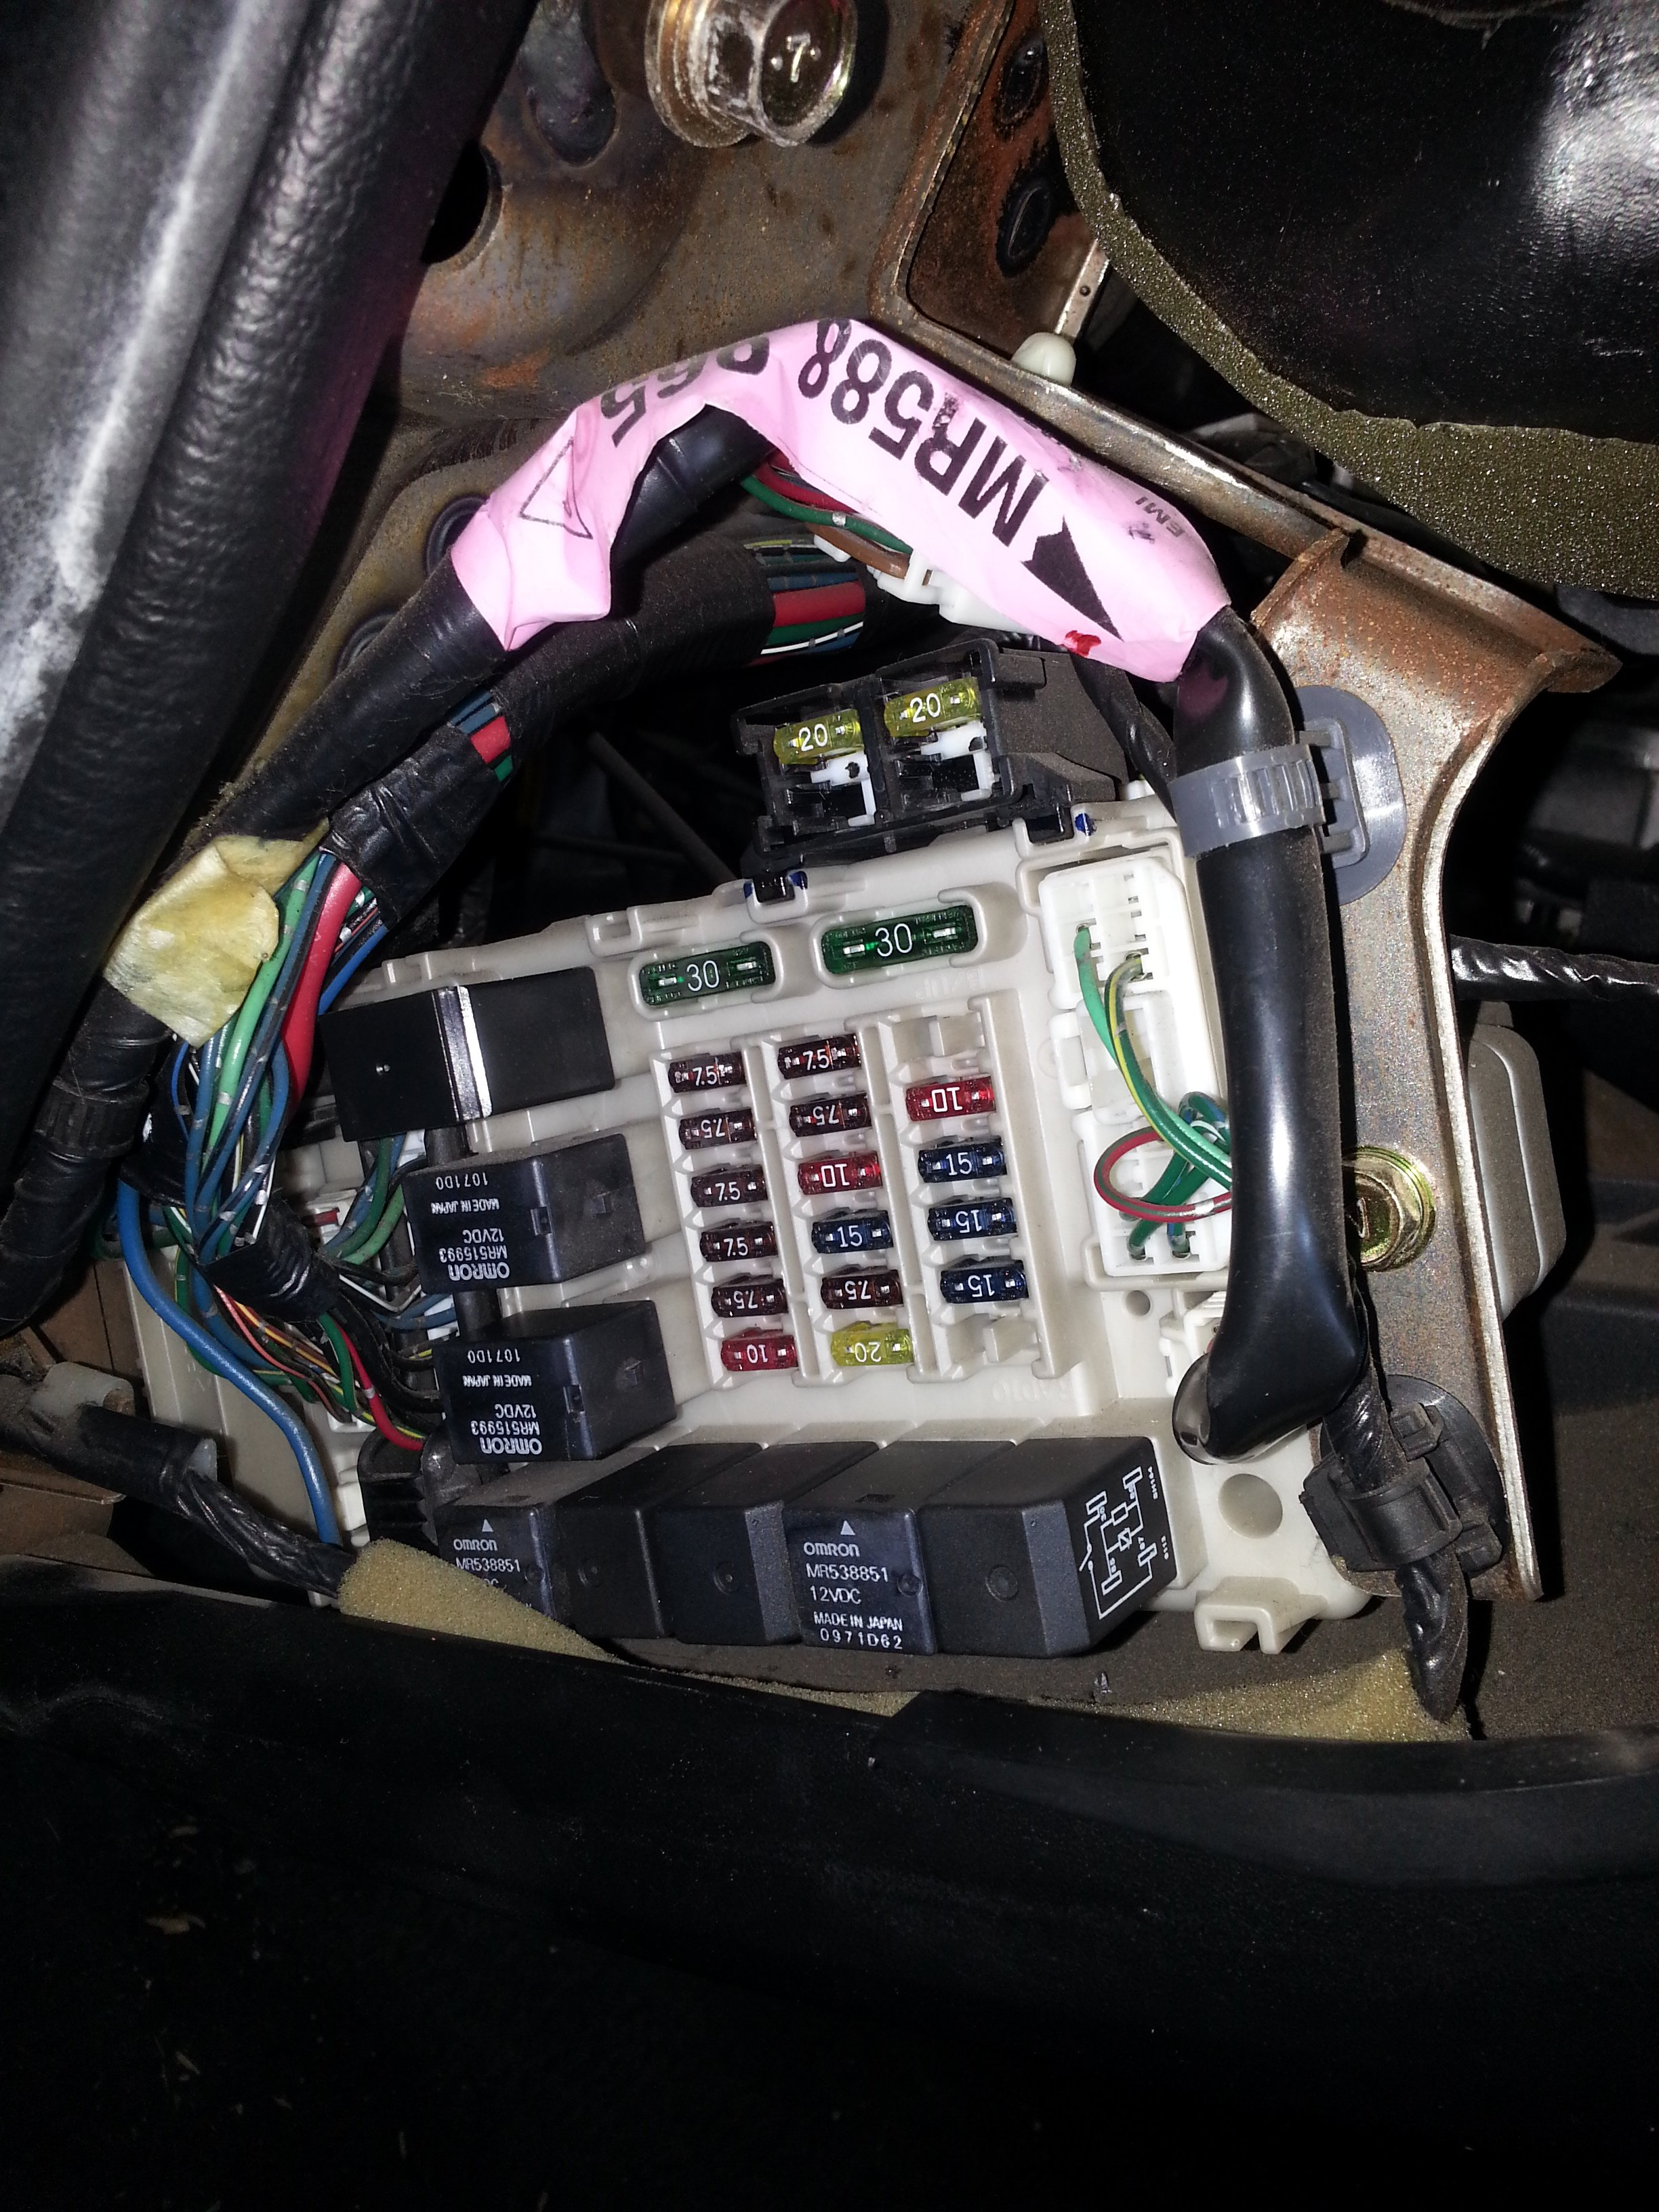 I Need A Fuse And Relay Diagram For A 2002 Dodge Stratus 3 0 V6 Rt 2001 Dodge  Stratus Gas Mileage 2001 Dodge Stratus 3.0 Engine Diagram